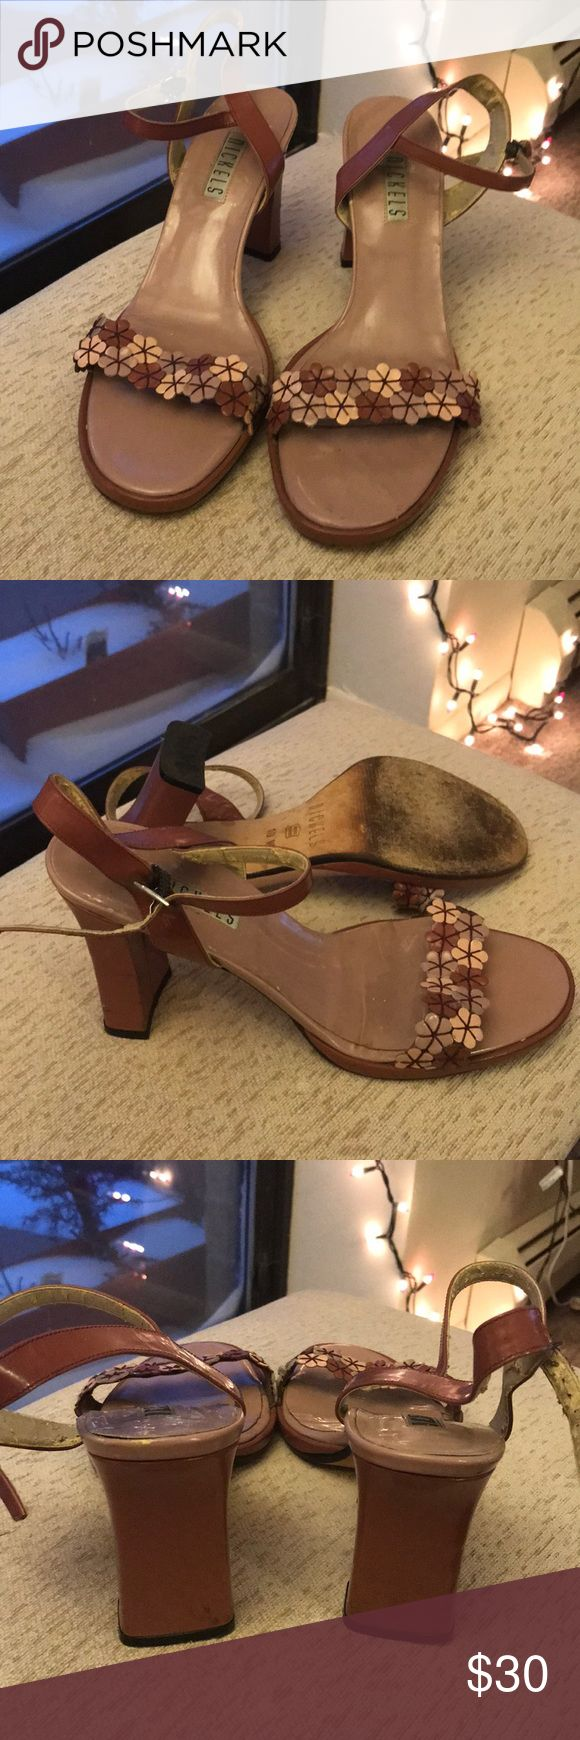 """Floral Heeled Sandals 3"""" Heeled Floral Sandals with Block Heel and Floral Leather Decorated Toe Strap. Overall in good condition. Scuffing on interior and exterior of toe box as well as back of block heels. Leather cracking on interior of ankle strap closure. Nickels Shoes Sandals"""